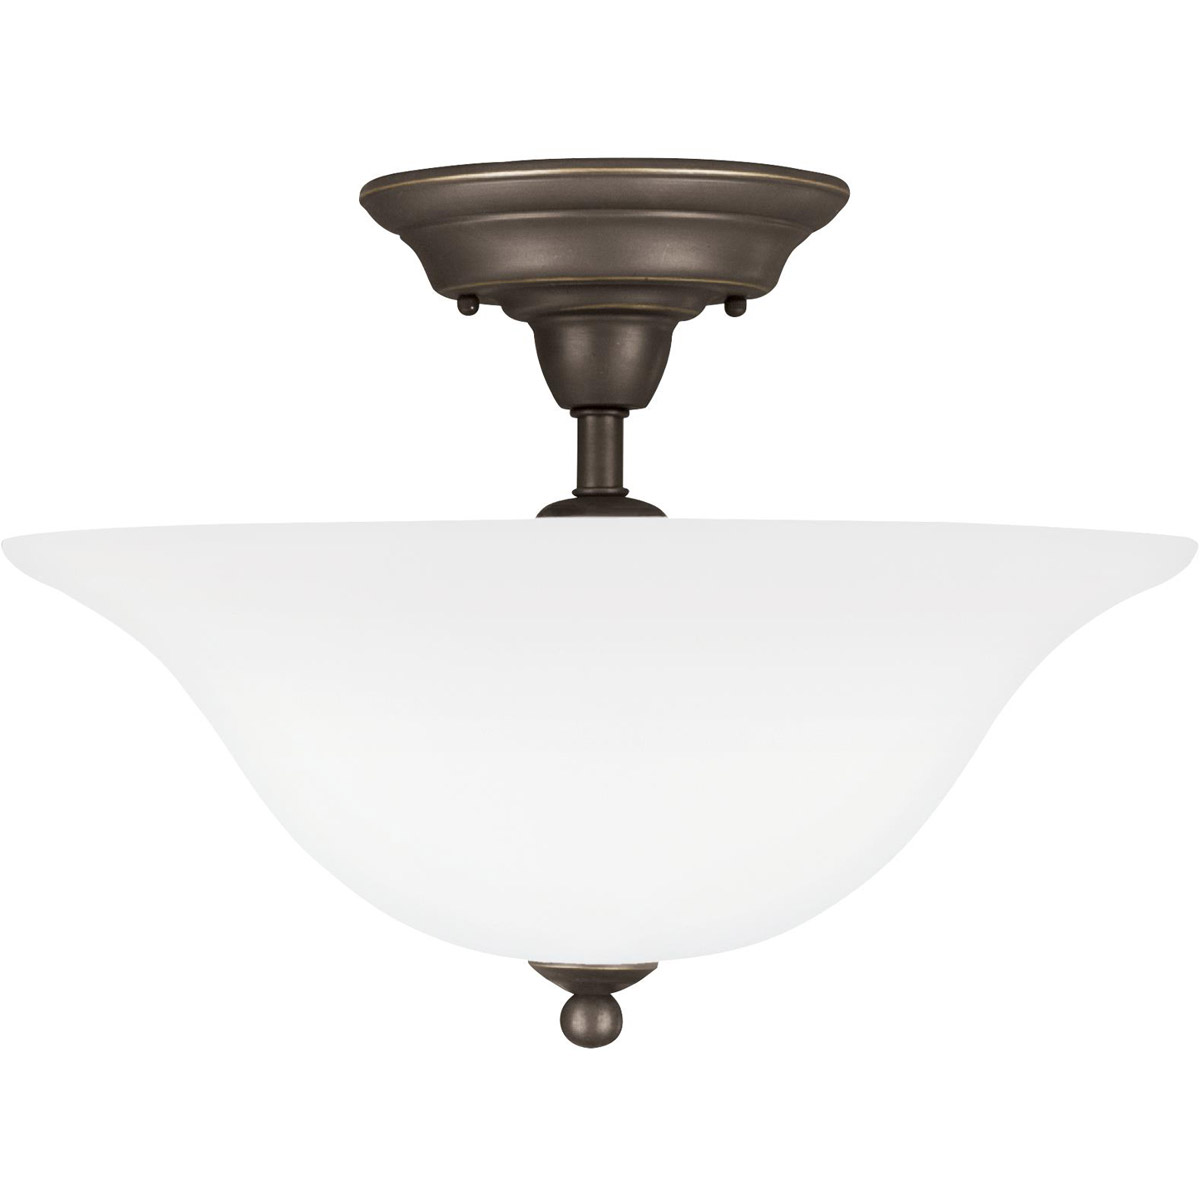 Sea Gull Lighting Sussex 3 Light Semi Flush Mount in Heirloom Bronze 75061-782